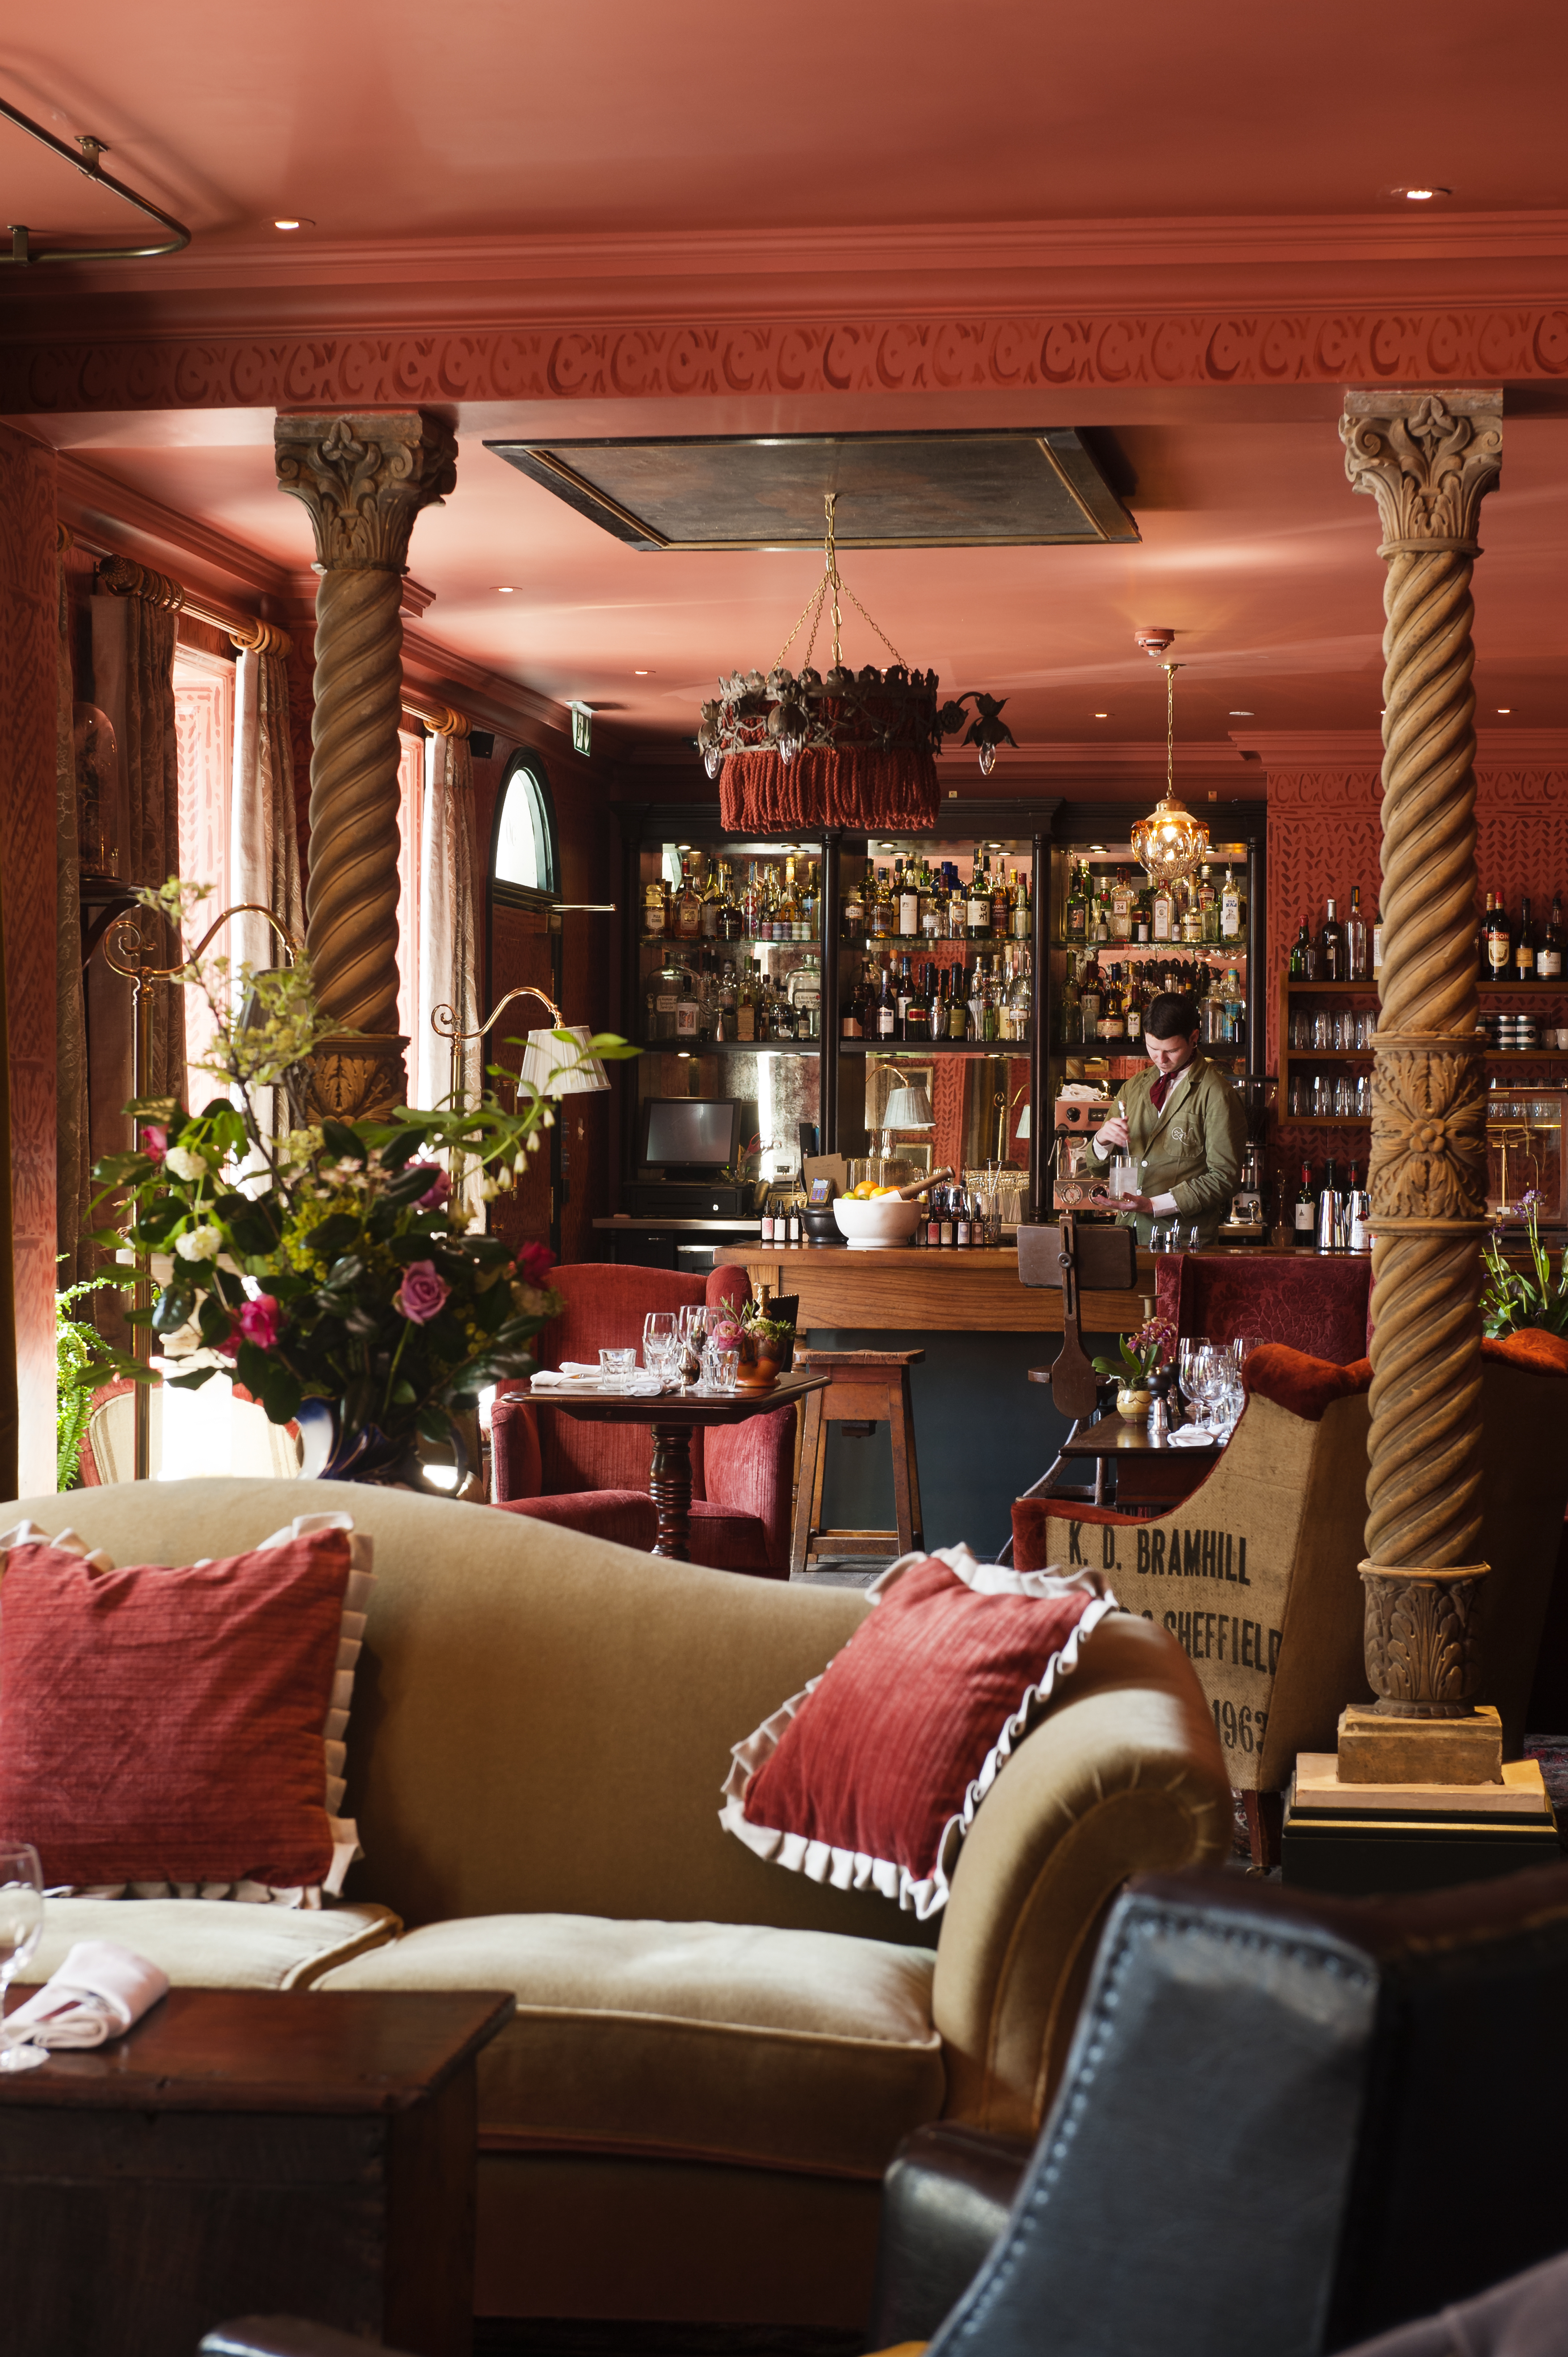 The Zetter Townhouse Is Crammed Full Of Collectibles Taxidermy And Victoriana From Aunt Wilhelminas Travels Its Light Blue Front Door Has Been